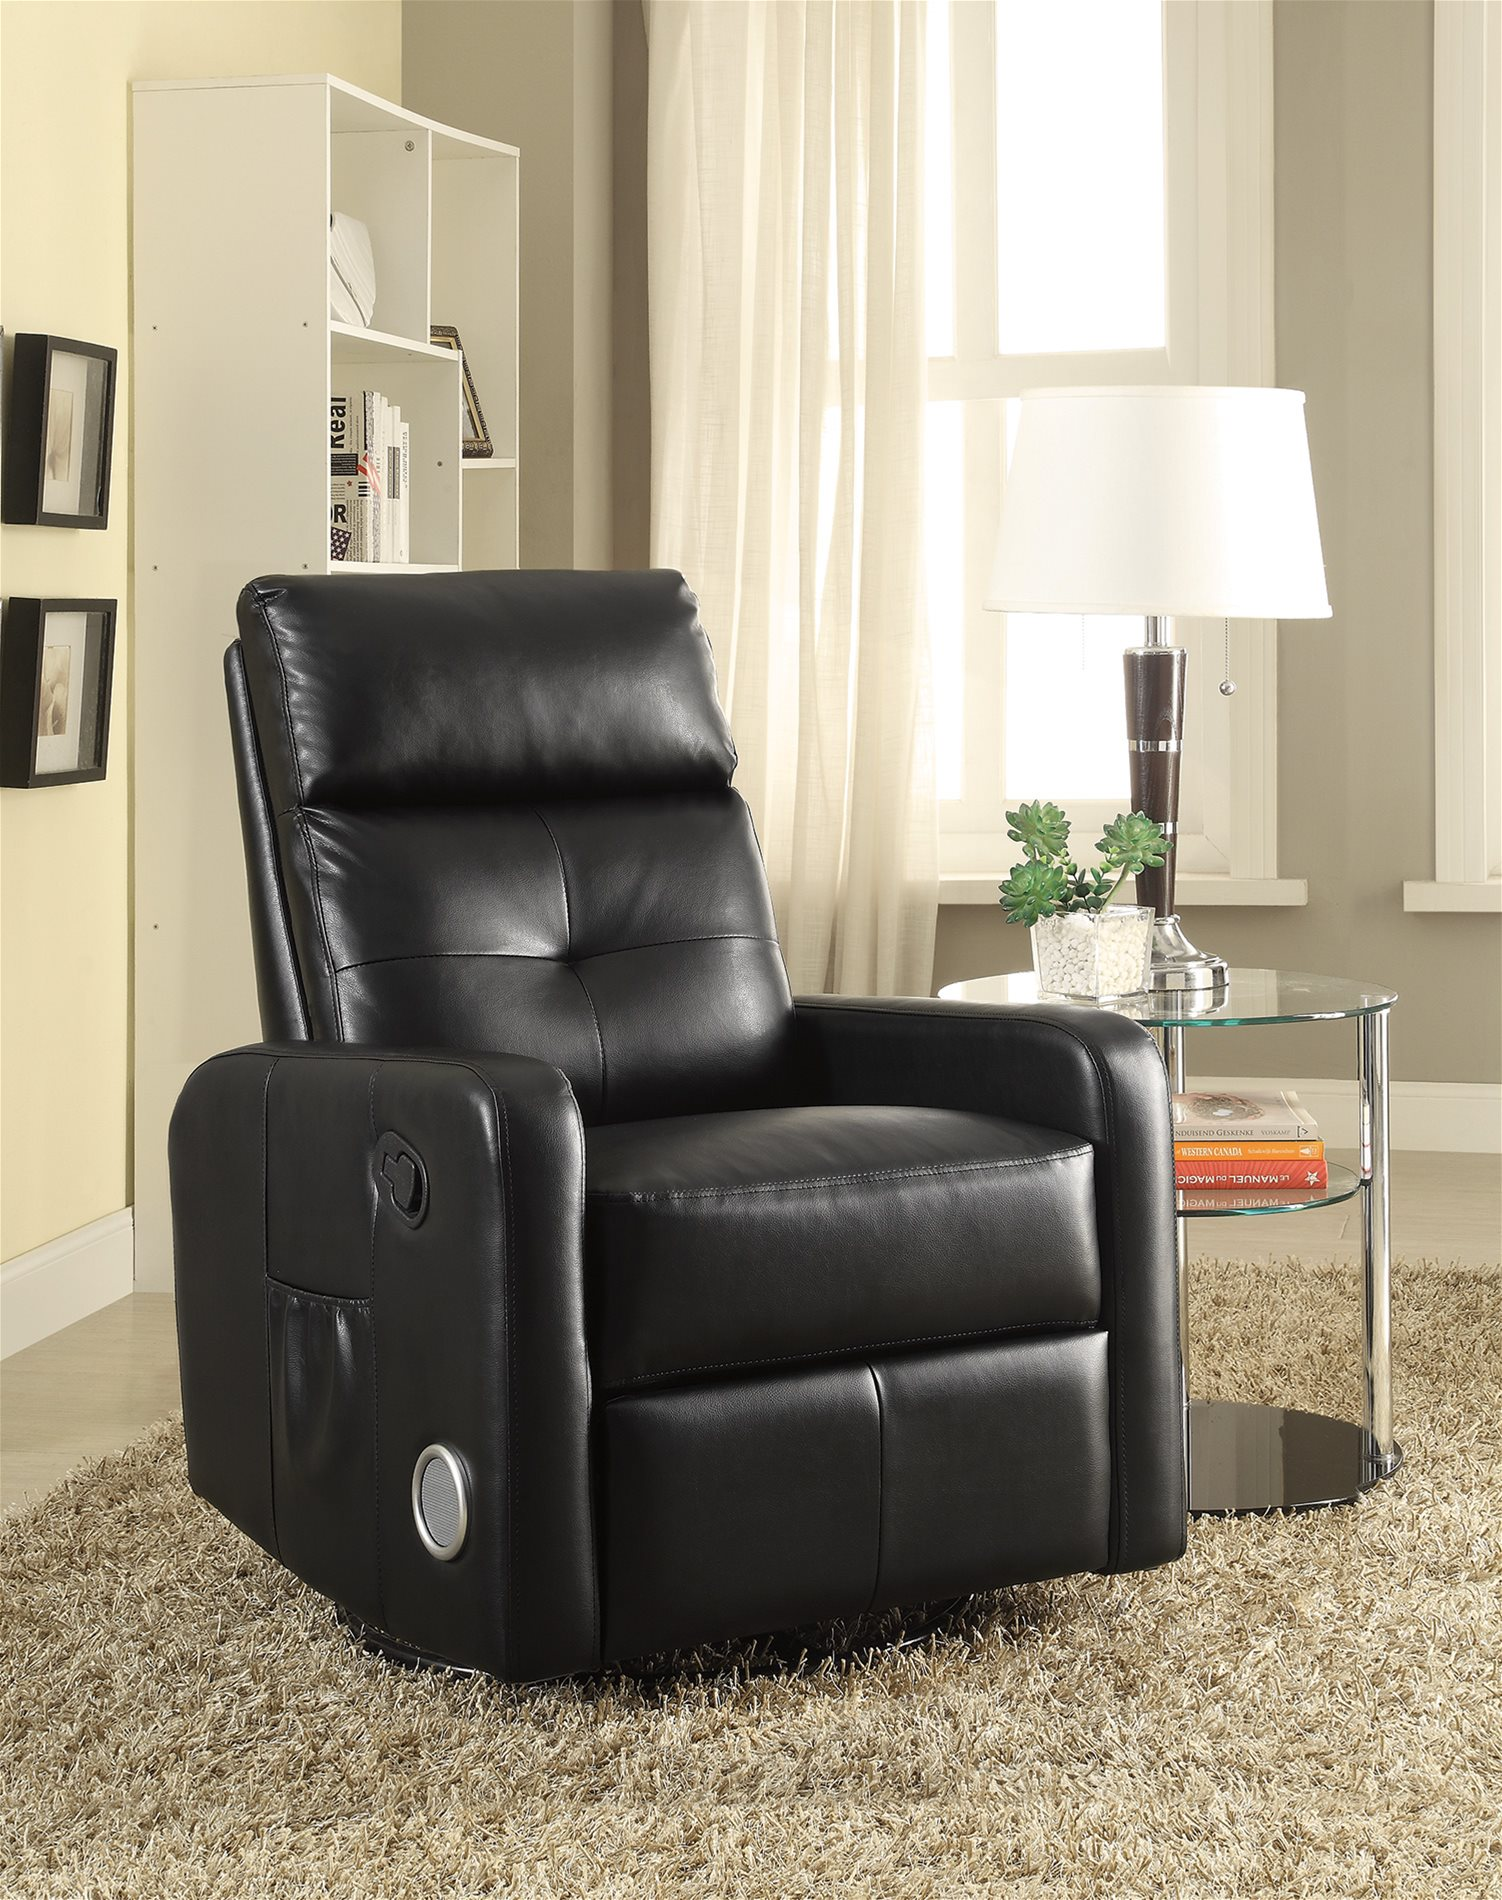 Coaster Home 600054 Swivel Glider Recliner With Built In